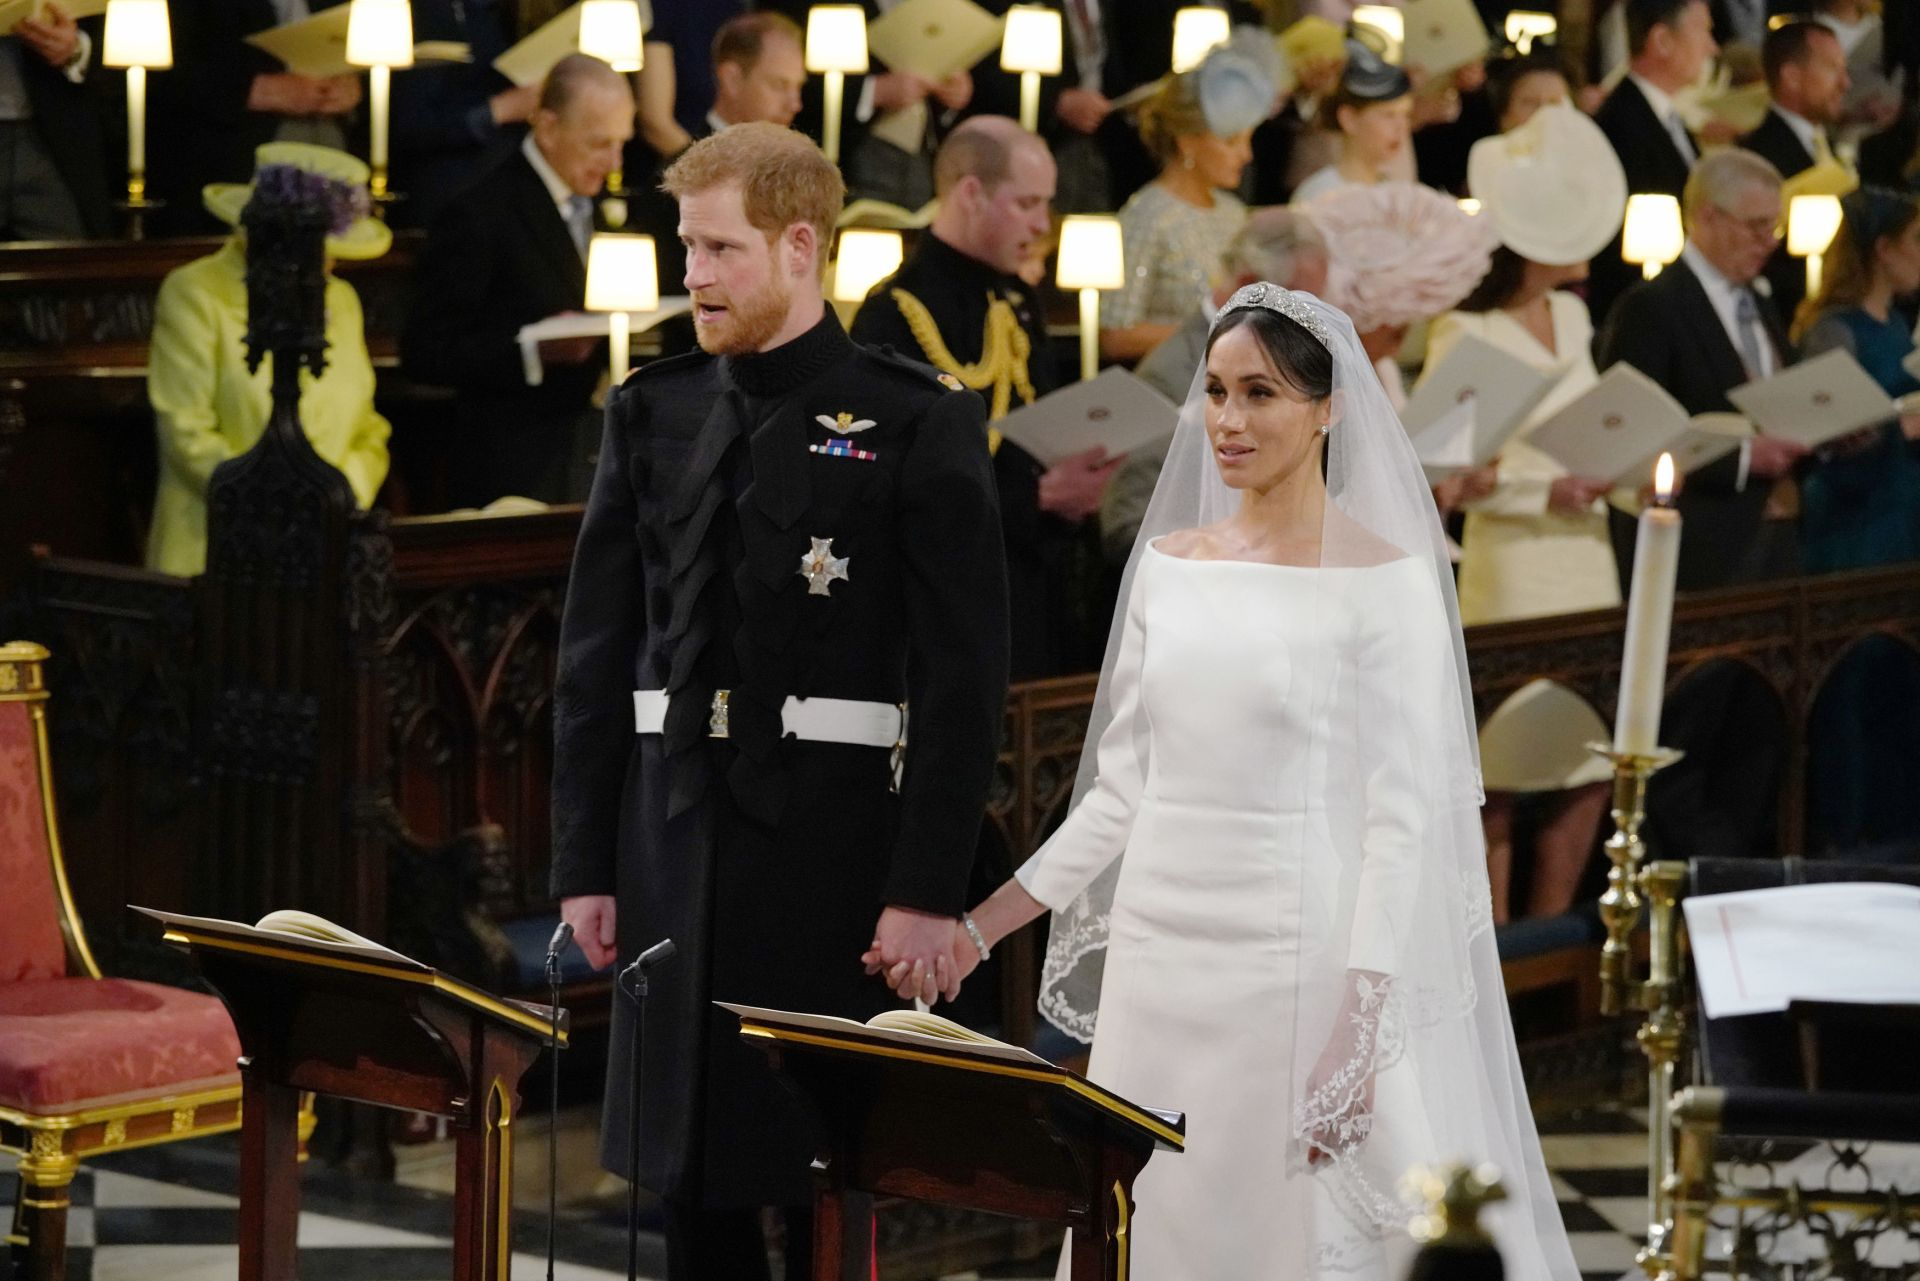 #Tatlergram: The Best Moments From Prince Harry And Meghan Markle's Wedding